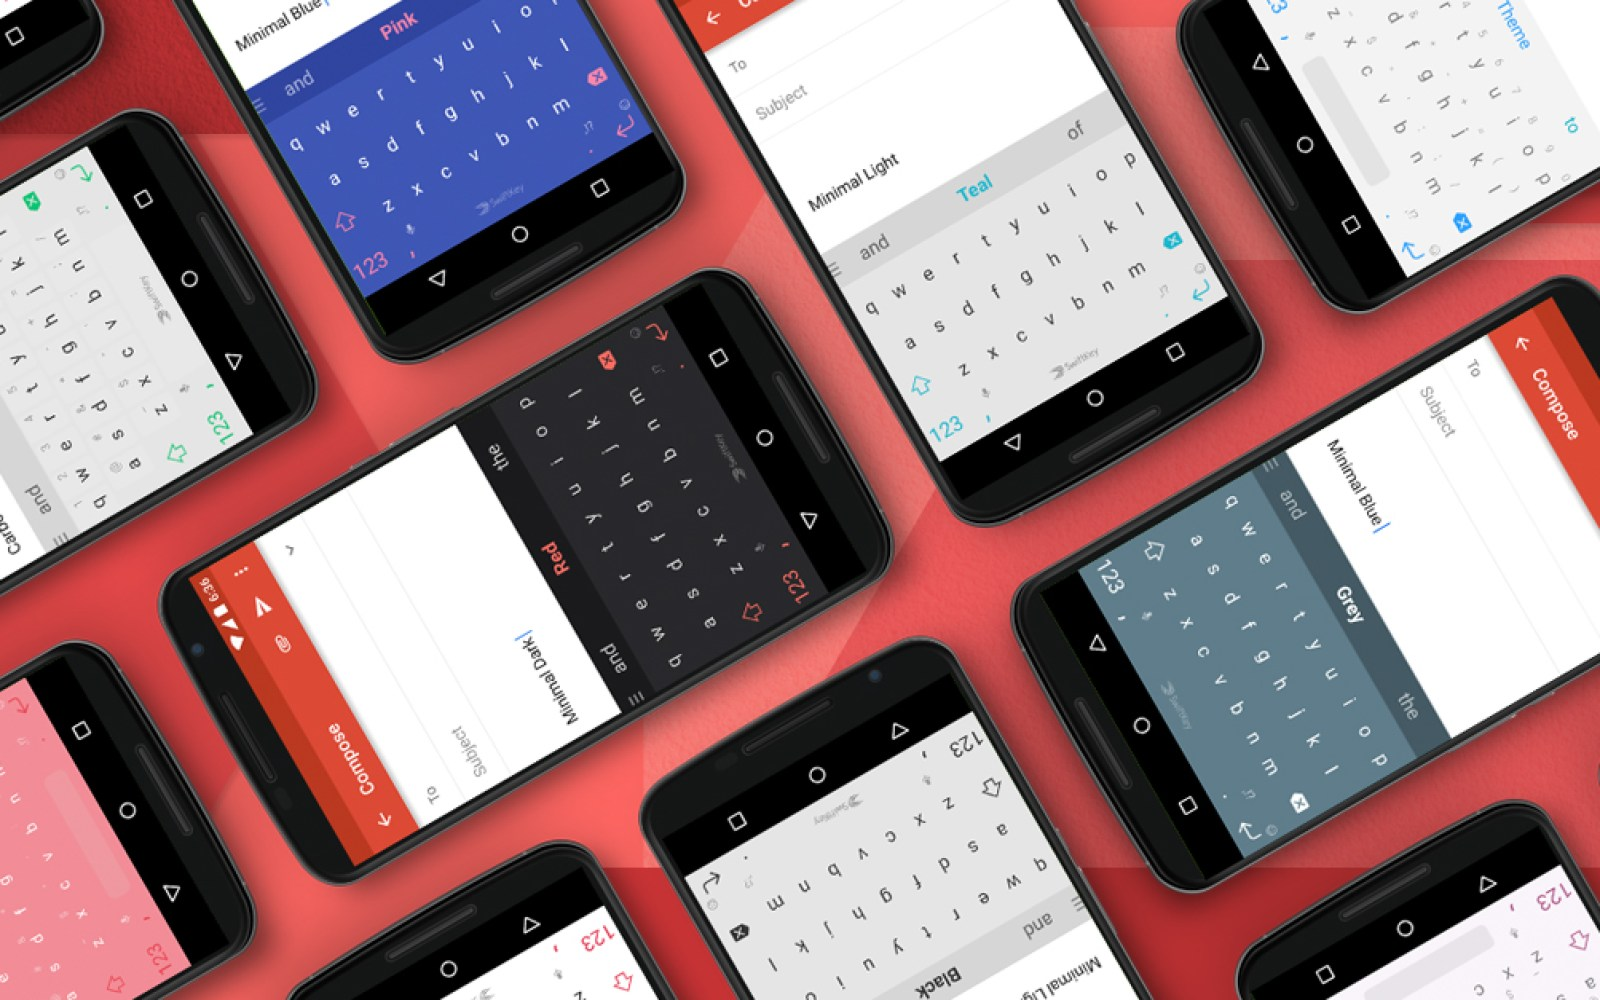 Microsoft purchases popular keyboard maker SwiftKey for $250 million